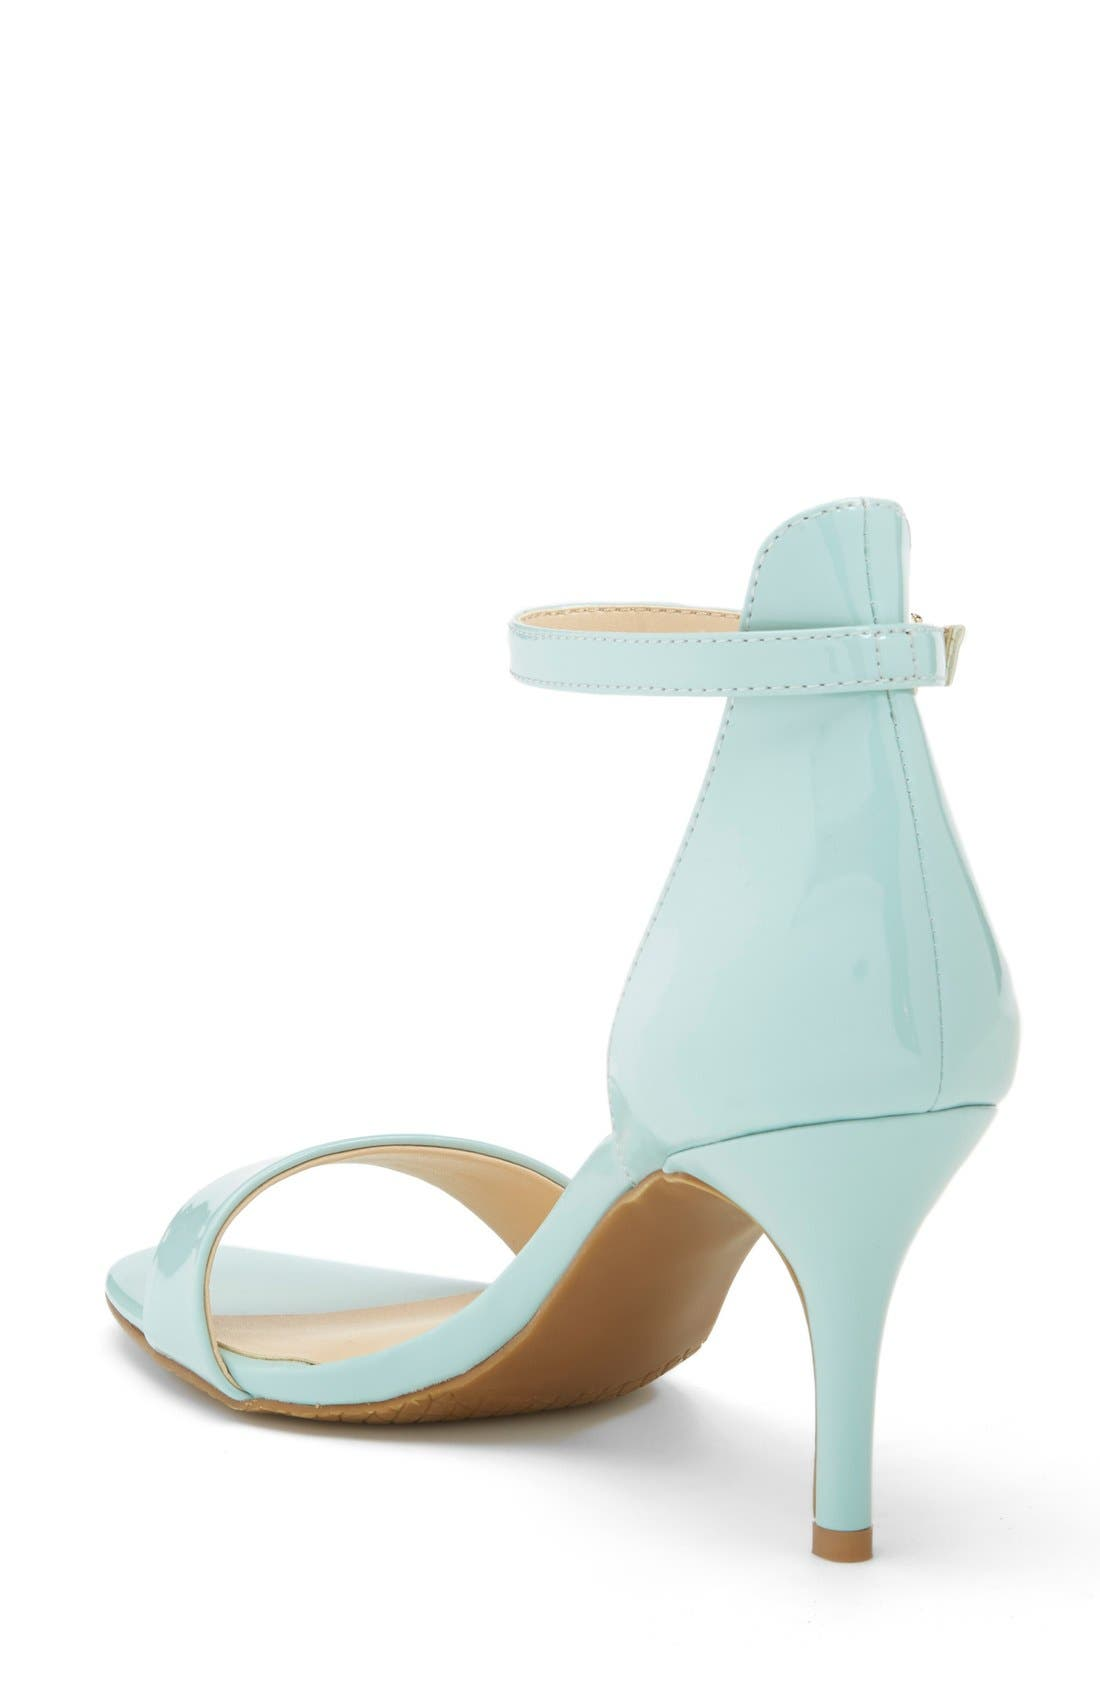 'Luminate' Open Toe Dress Sandal,                             Alternate thumbnail 127, color,